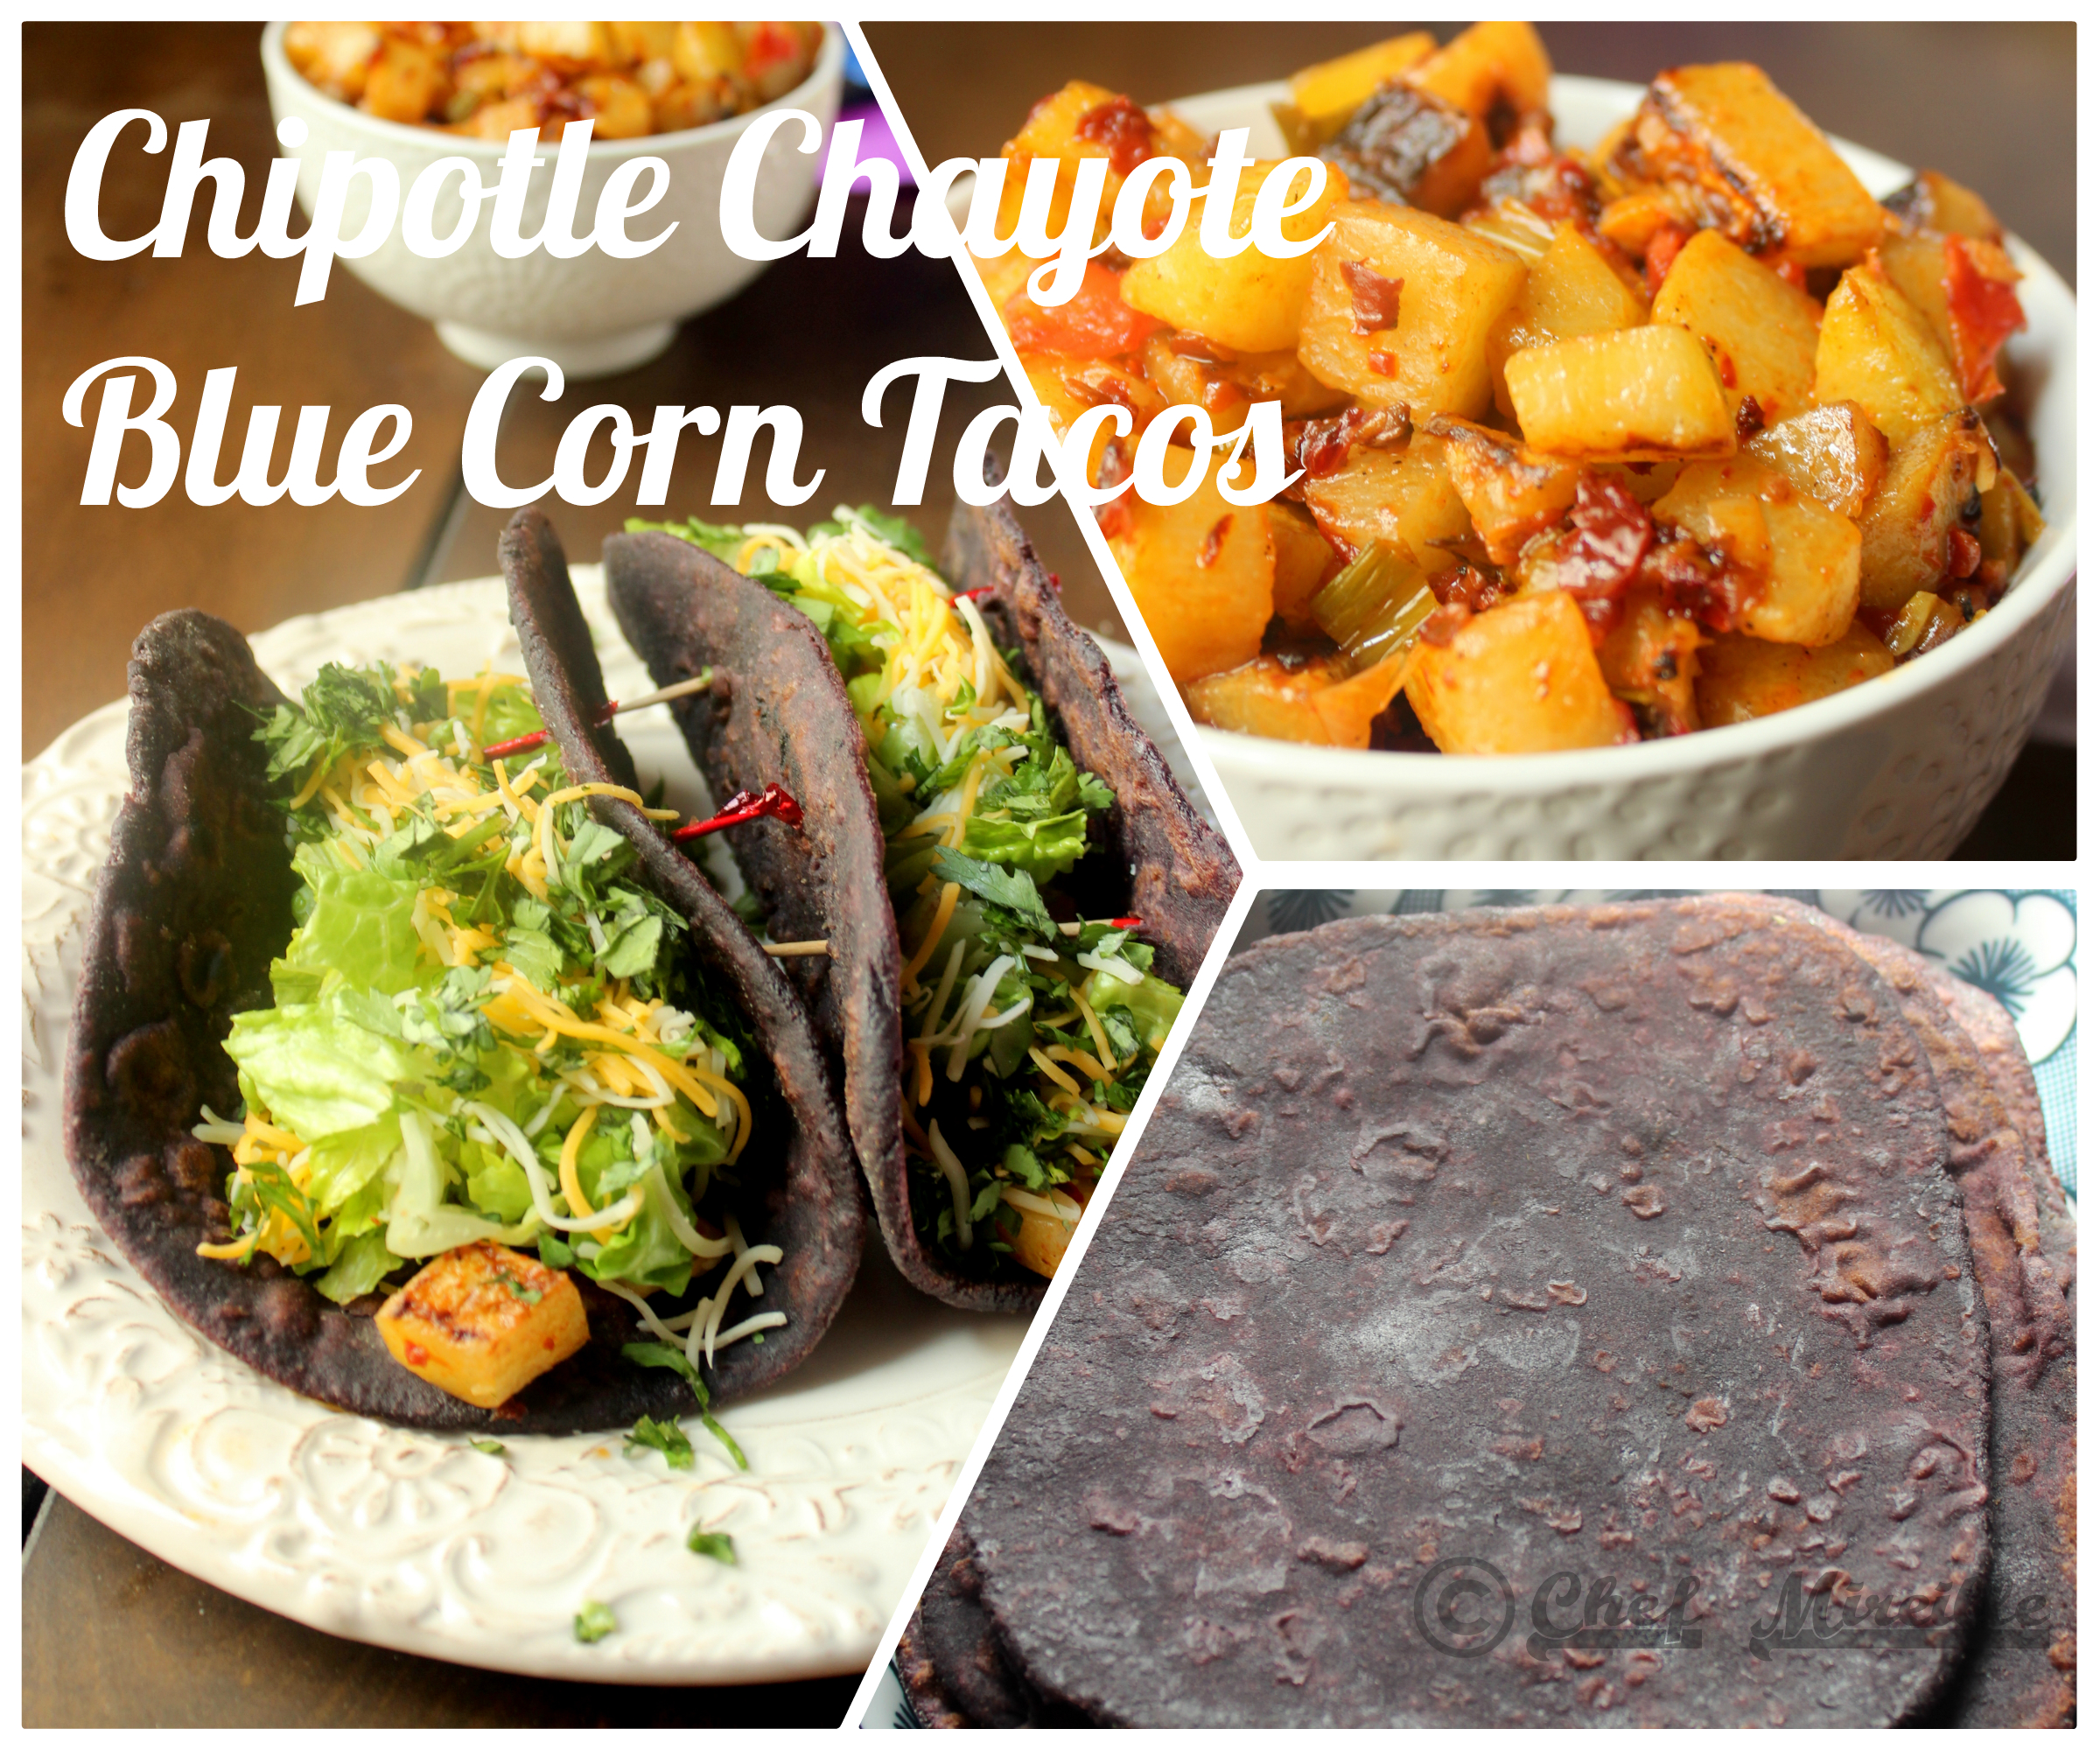 Chipotle Chayote Blue Corn Tortillas